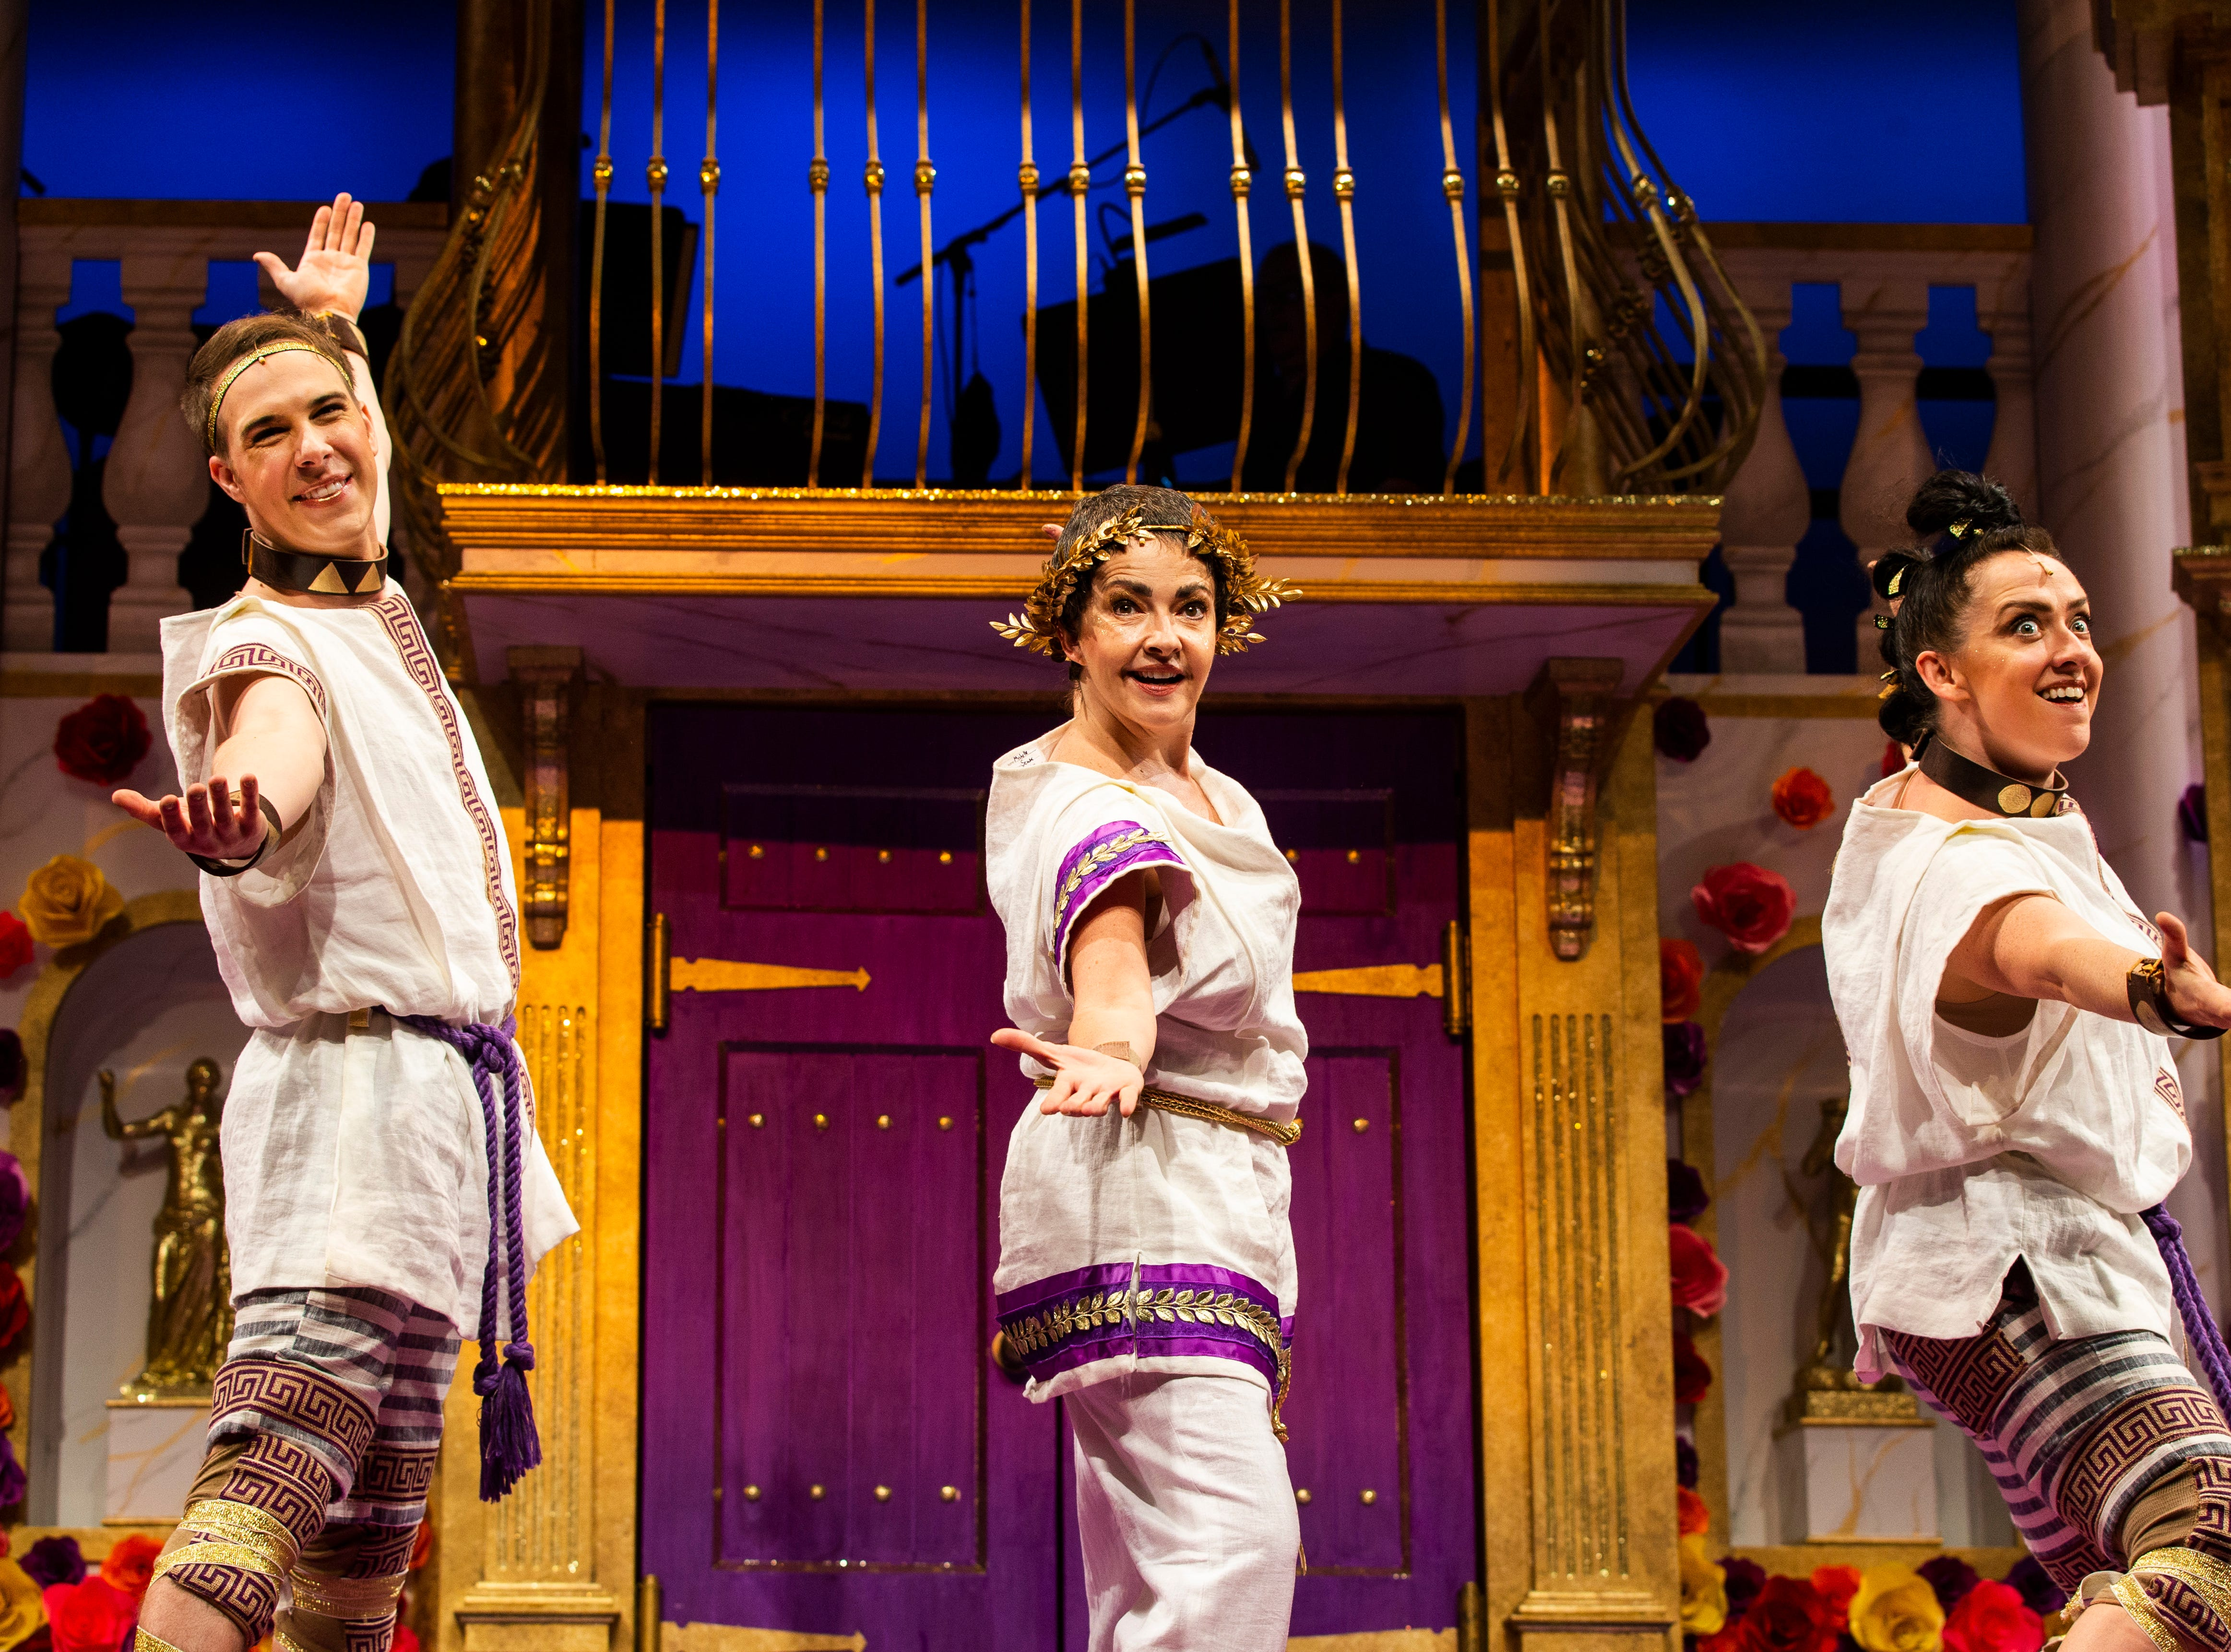 """John Wascavage, from left, Michele Ragusa and Kristen Mengelkoch rehearse a scene for Gulfshore Playhouse's upcoming production of """"A Funny Thing Happened on the Way to the Forum"""" at The Norris Center in Naples on Tuesday, Nov. 13, 2018."""